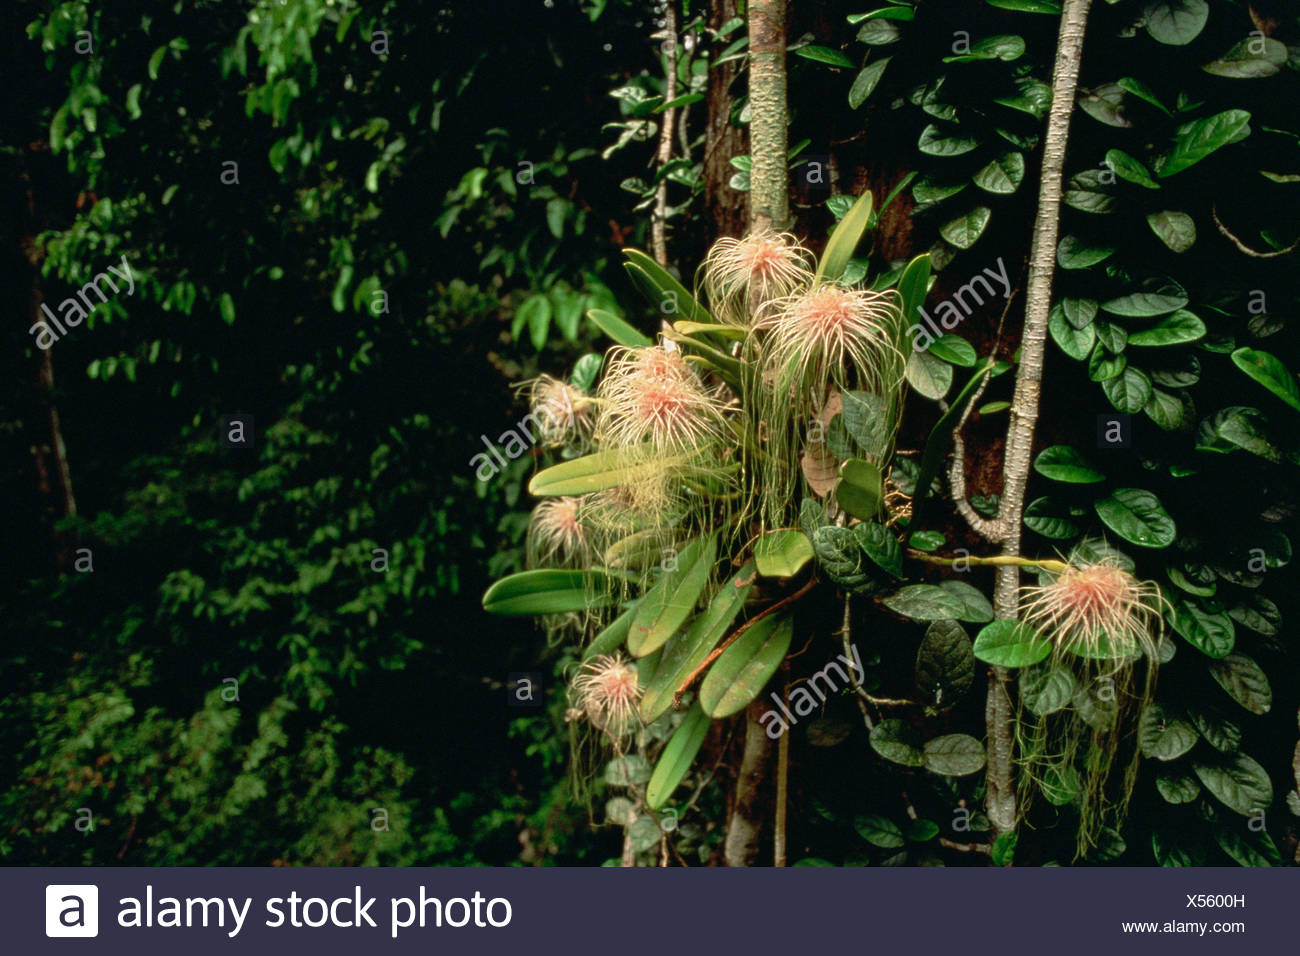 Epiphytic orchid (Bulbophyllum medusae) growing in the canopy of the lowland rainforest, Gunung Palung National Park, Borneo, West Kalimantan, Indonesia - Stock Image